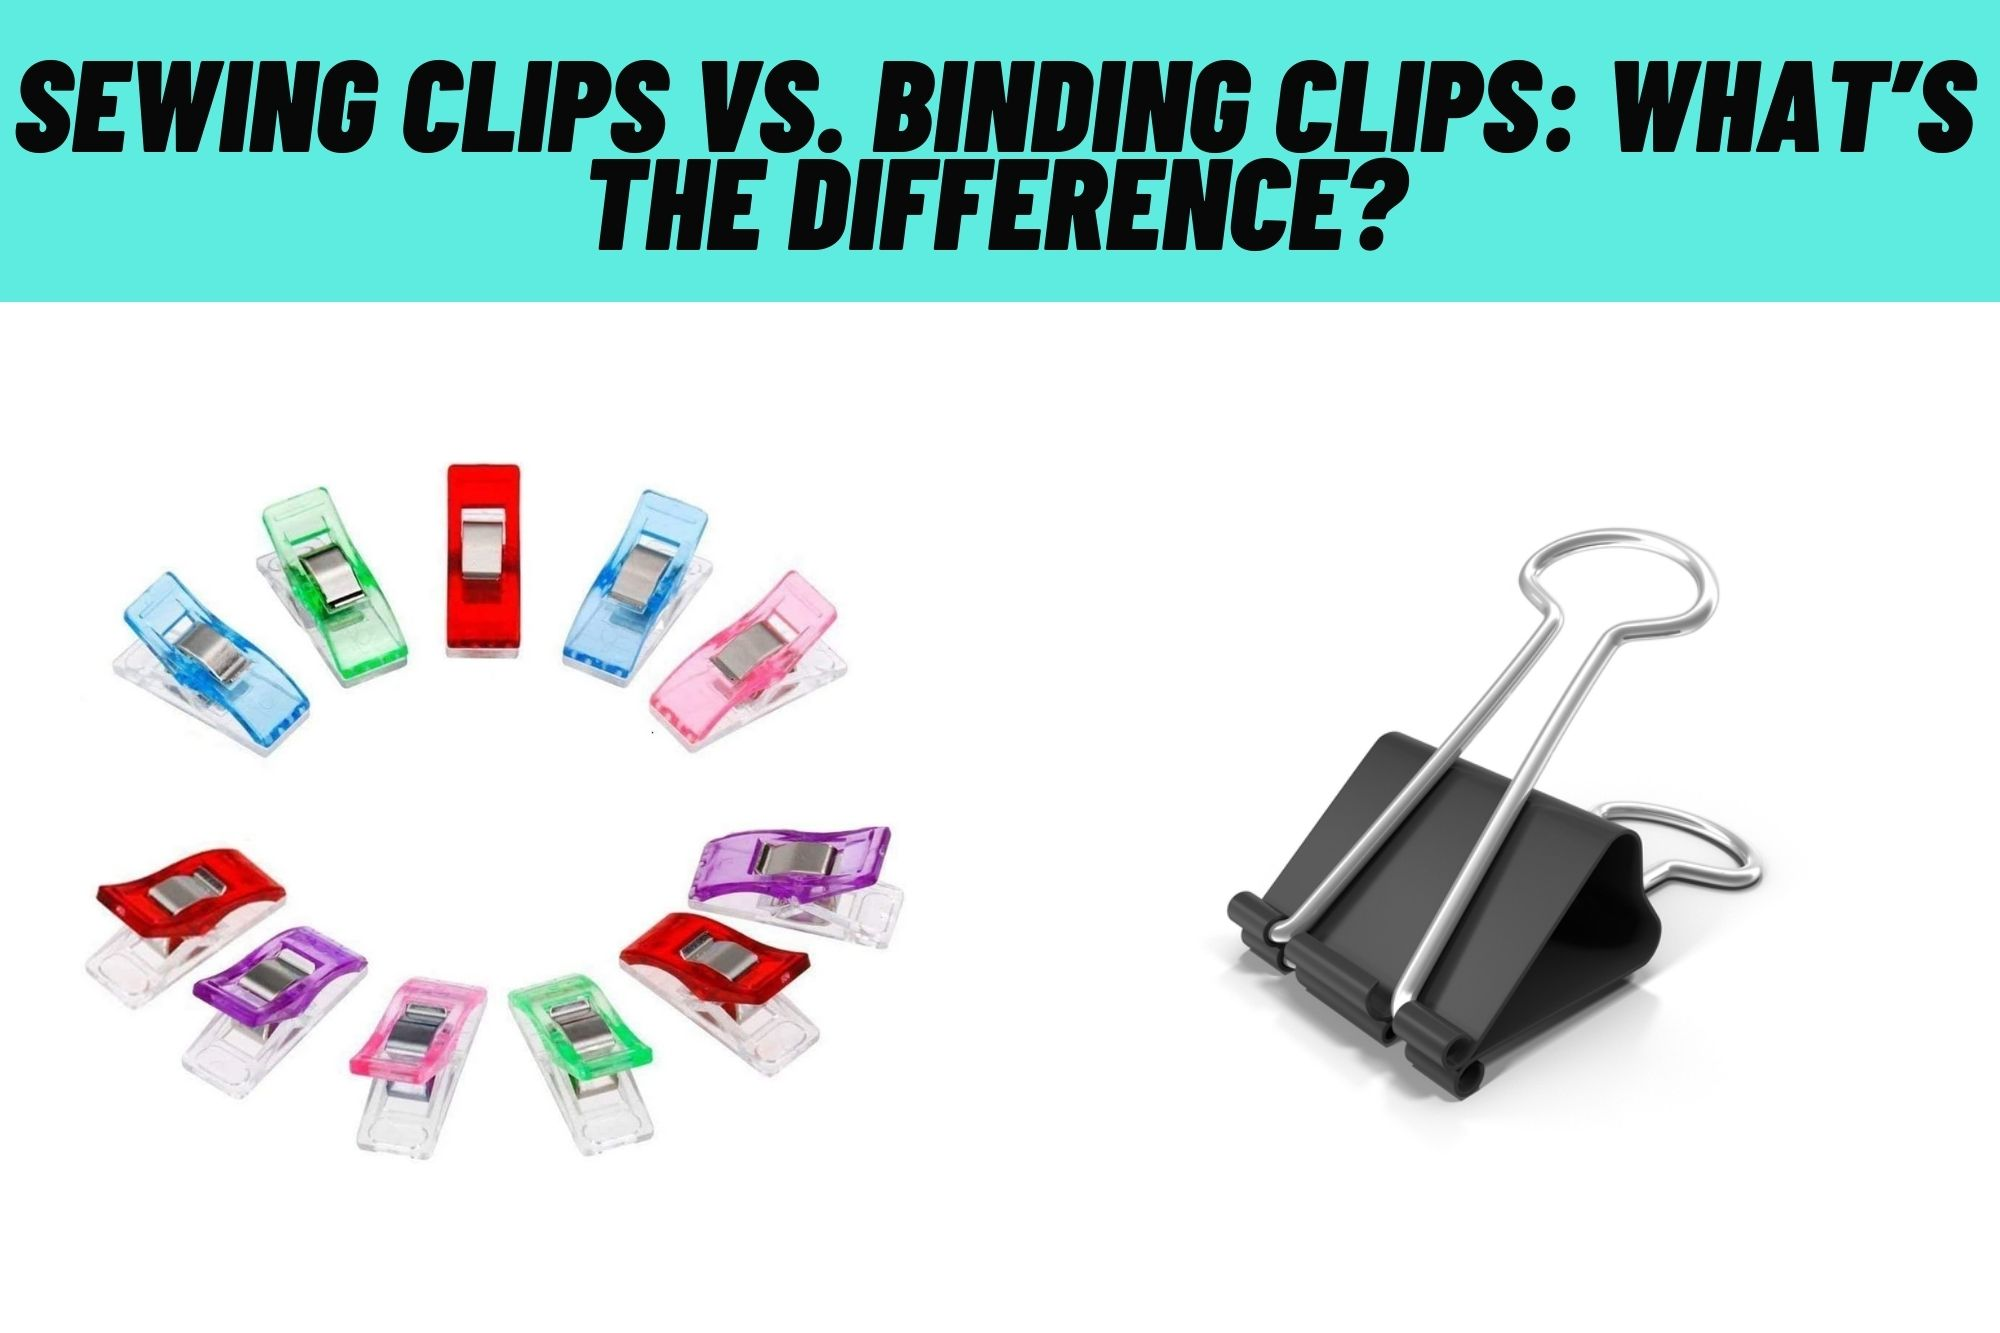 Sewing Clips VS. Binding Clips What Is A Sewing Clip? What is A Binding Clip? Difference In Structure Between Sewing Clips And Binding Clips Difference In Size Between Sewing Clip And Binding Clip Can We Use Binding Clips Instead Of Sewing Clips For Sewing Or Quilting? Is It Better To Use Pins Instead Of Clips on Fabric and Paper?